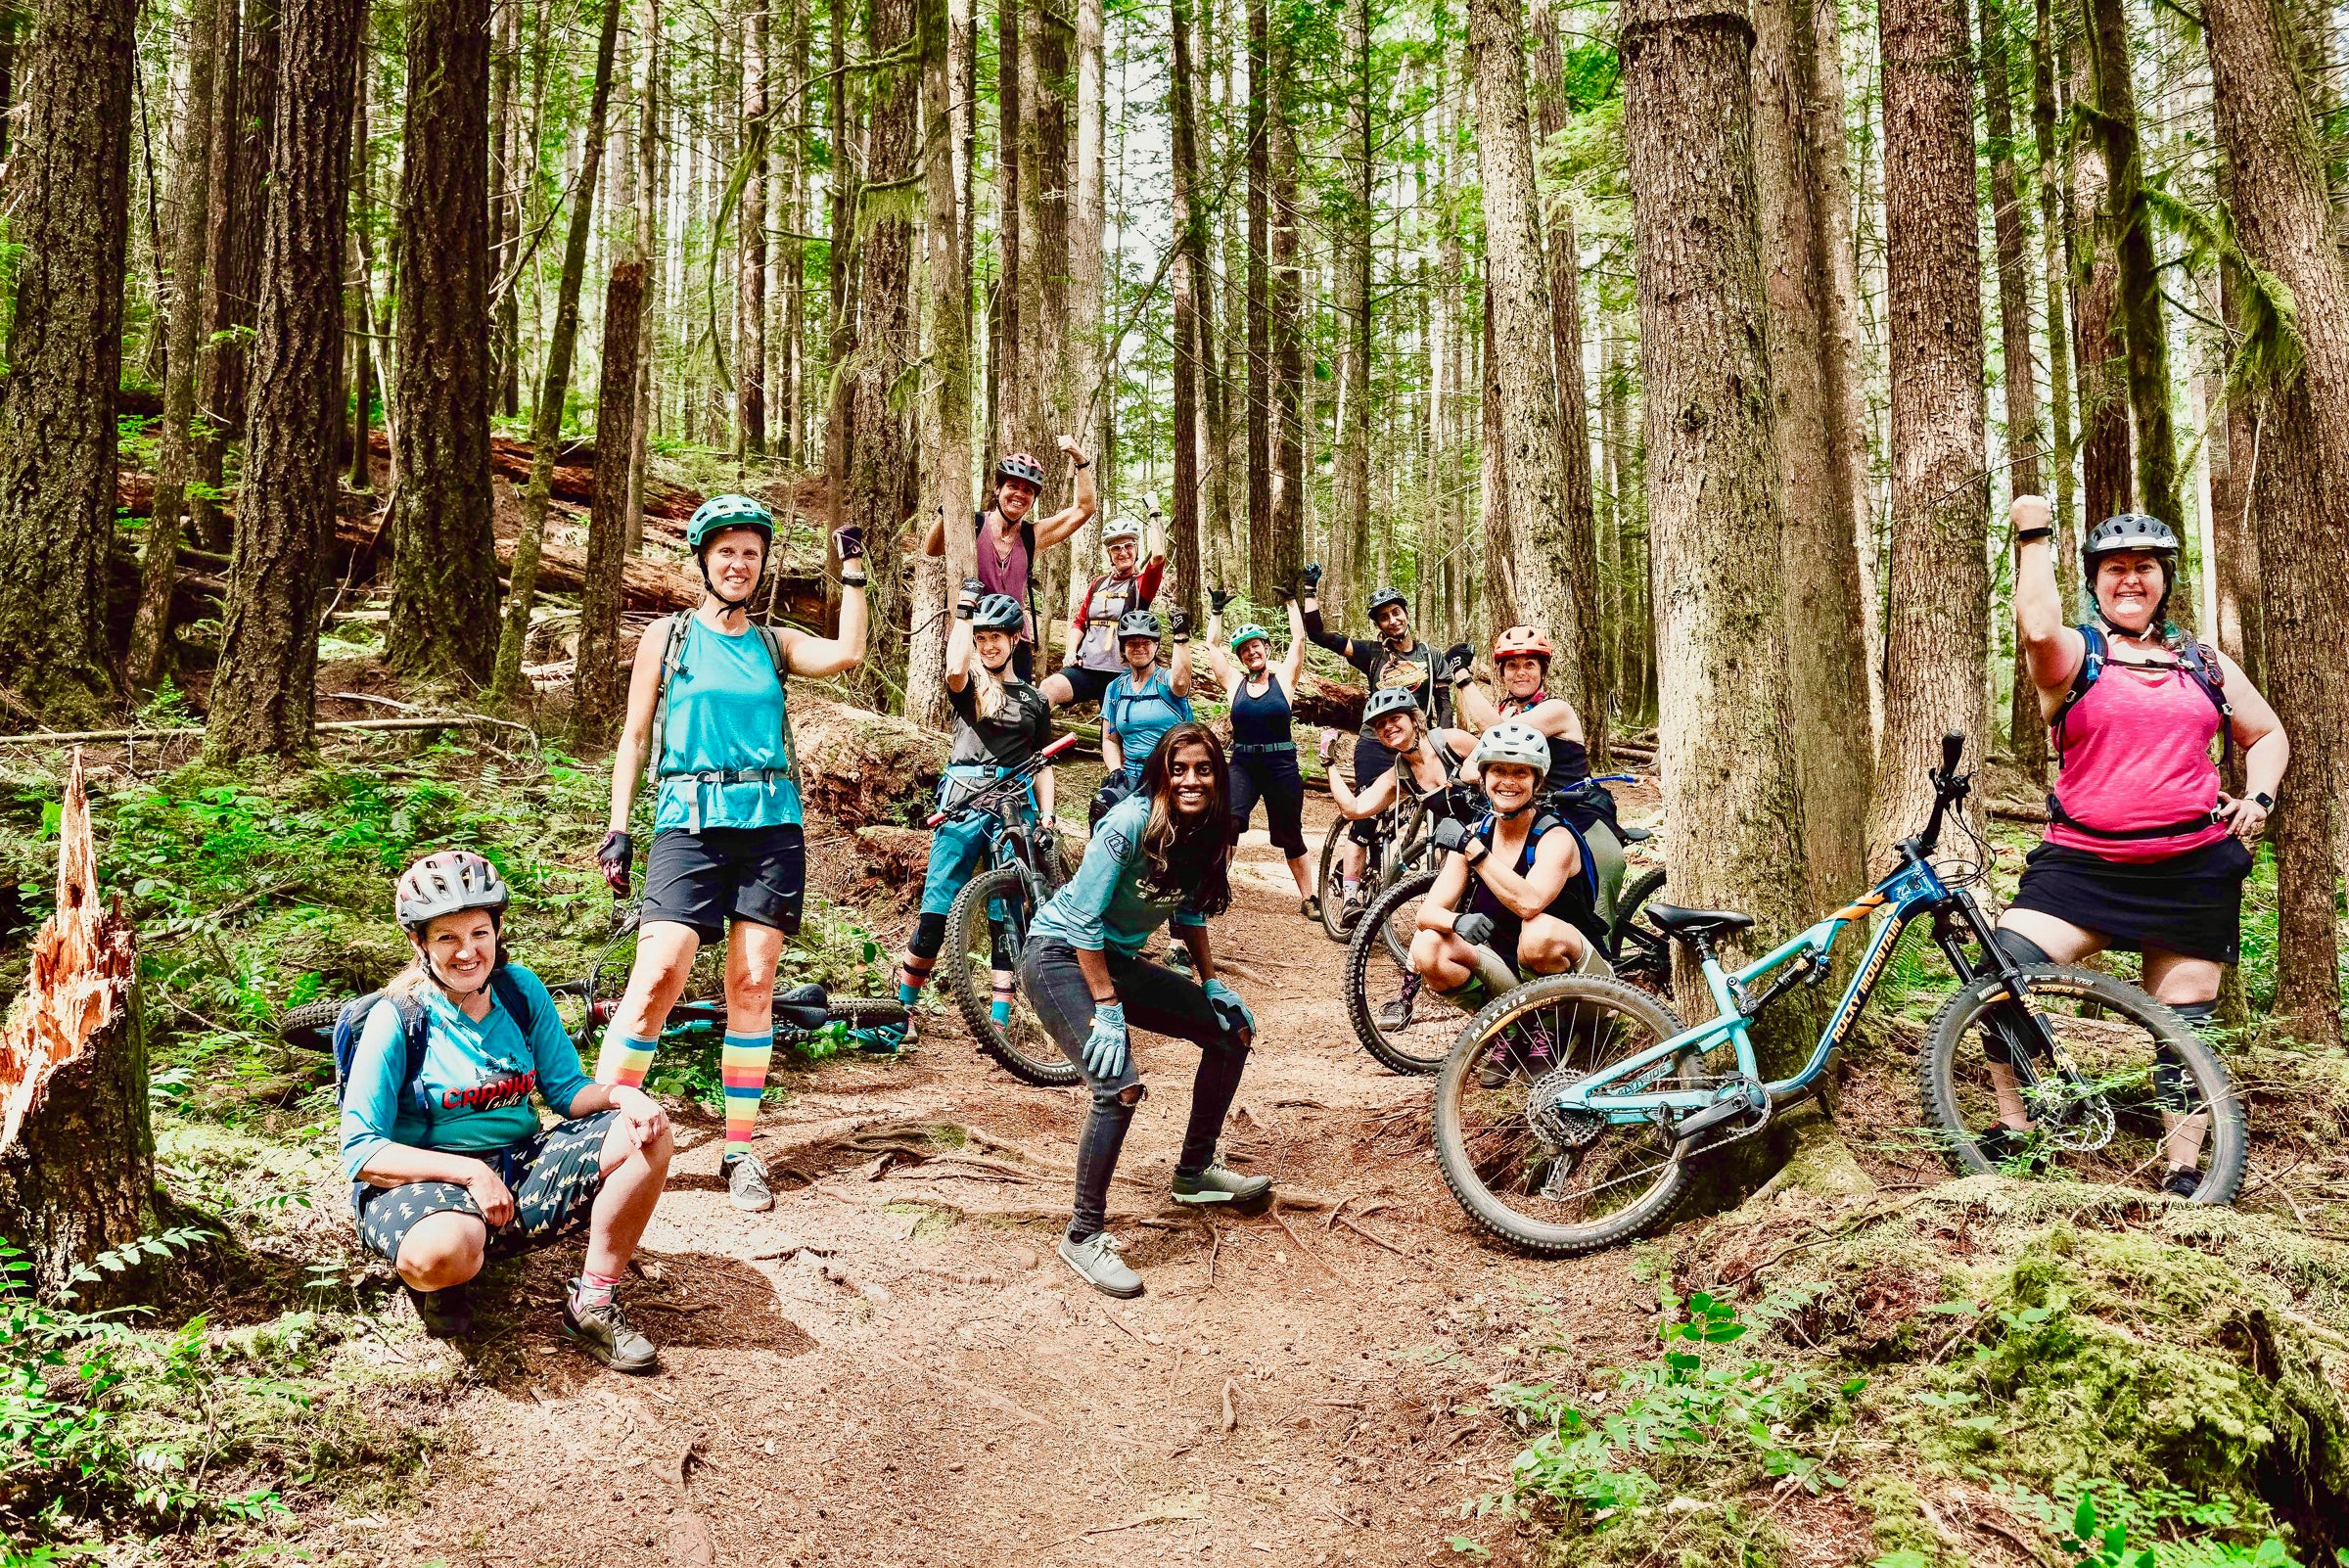 Group of mountain bikers in the woods